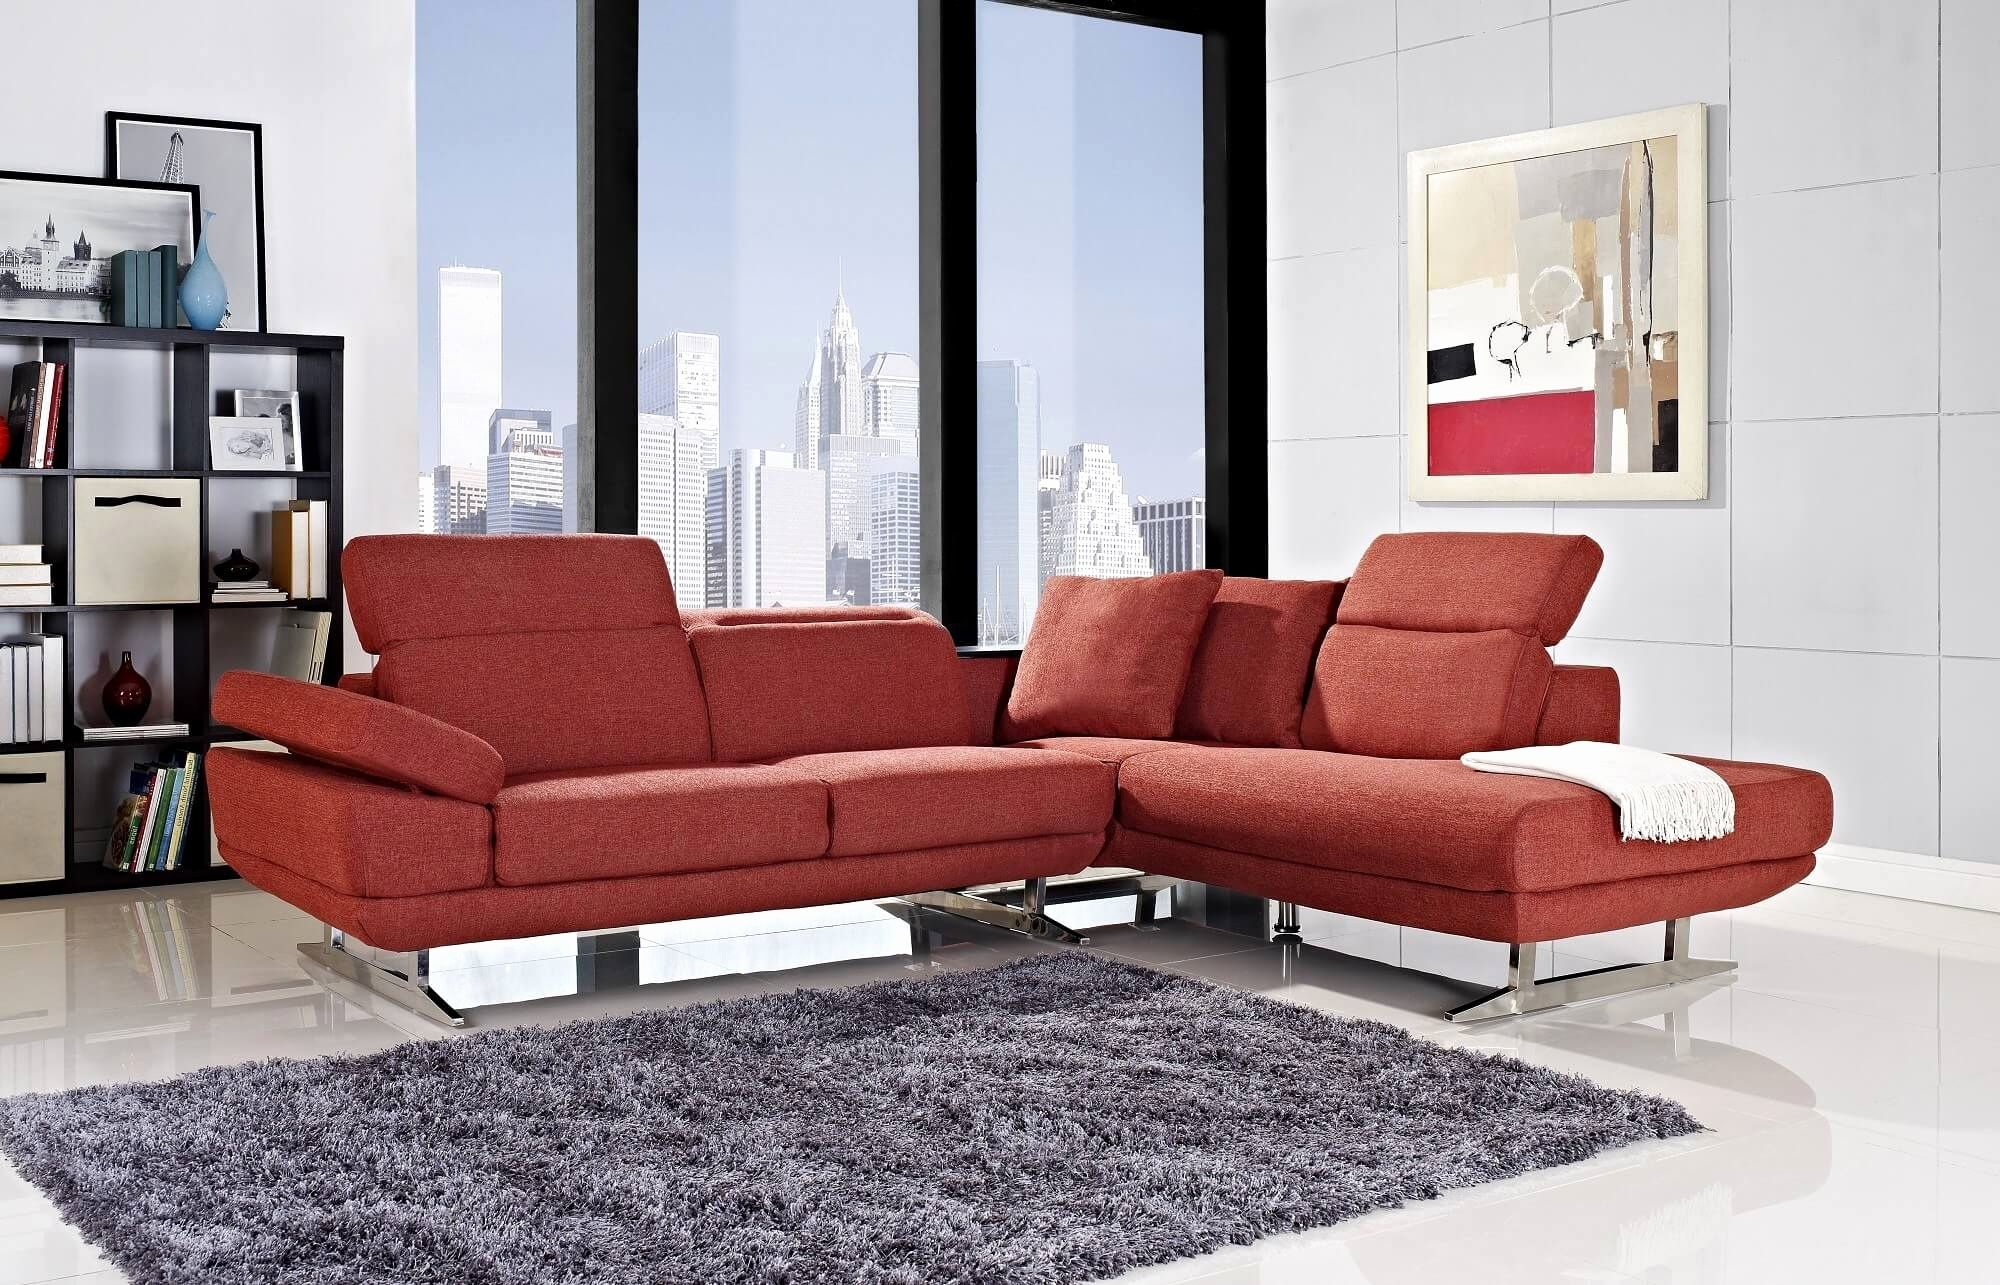 Fresh Red Microfiber Sectional Sofa Red Microfiber Sectional Sofa Best Of Sofas Fabulous Sofas For Small Spaces Modern Sofa Sectional Microfiber Sectional Sofa